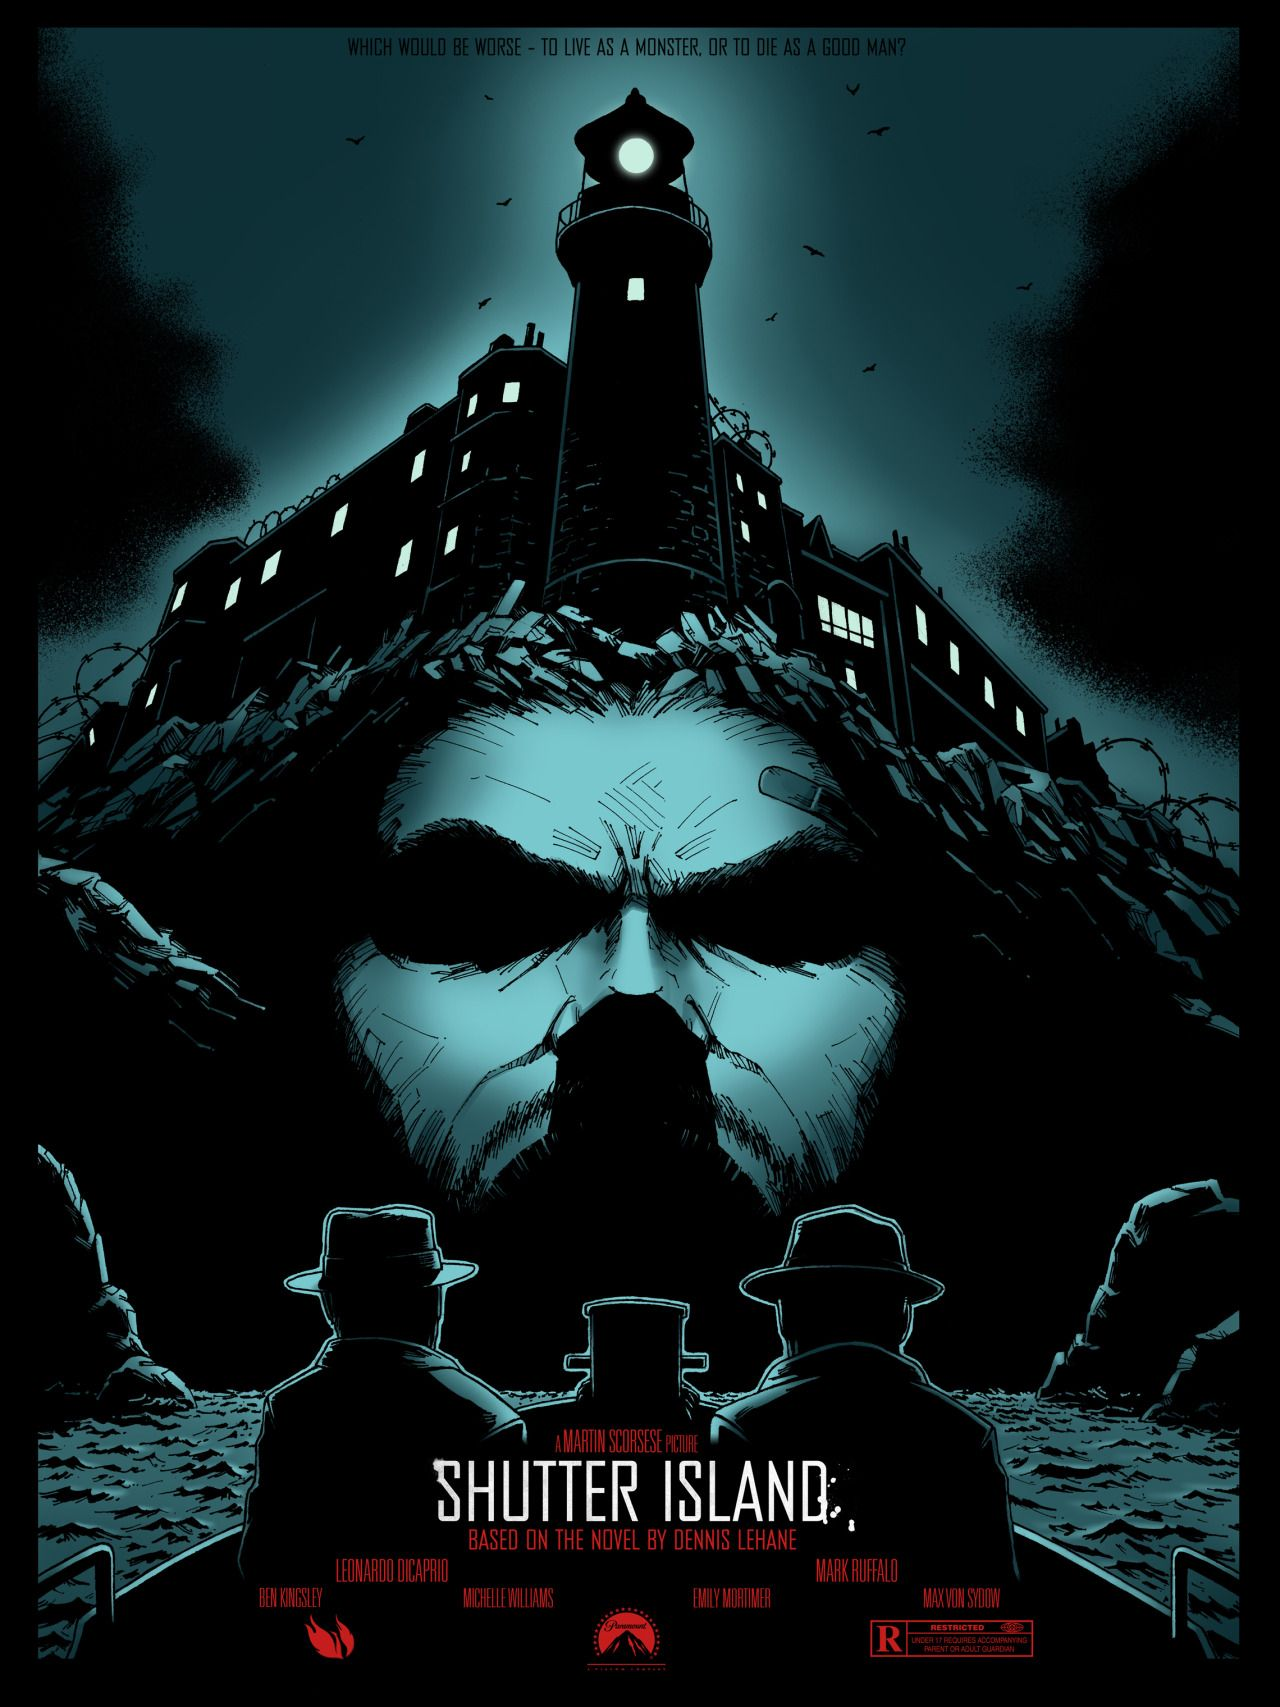 Shutter Island Shutter island, Shutter island film, Poster